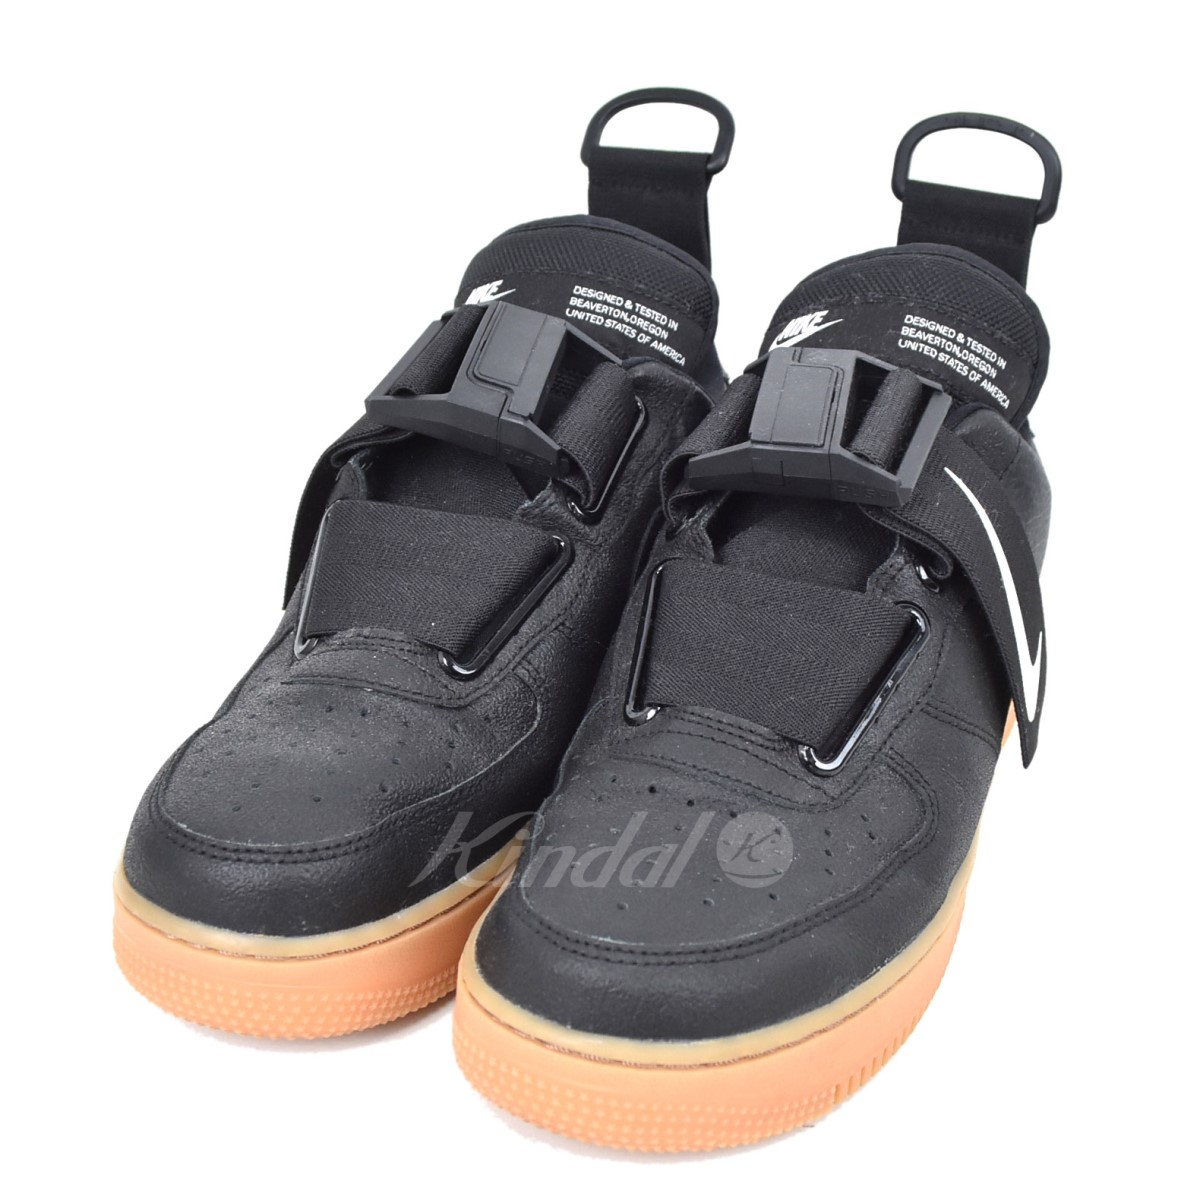 【中古】NIKE AIR FORCE 1 UTILITY スニーカー 【送料無料】 【298400】 【KIND1551】